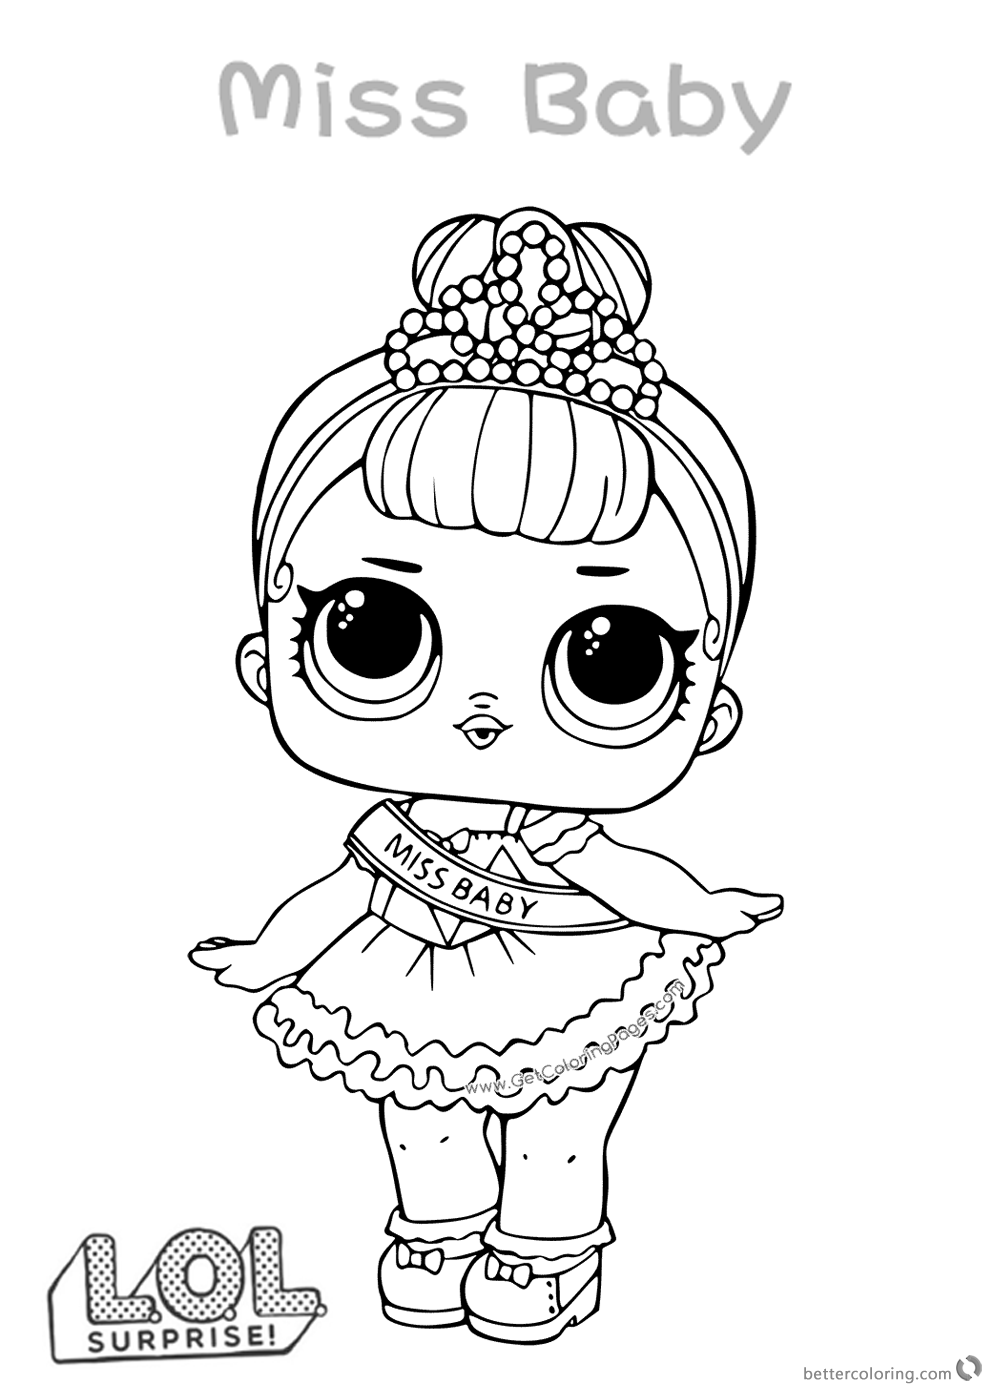 Miss Baby Lol Doll Coloring Pages